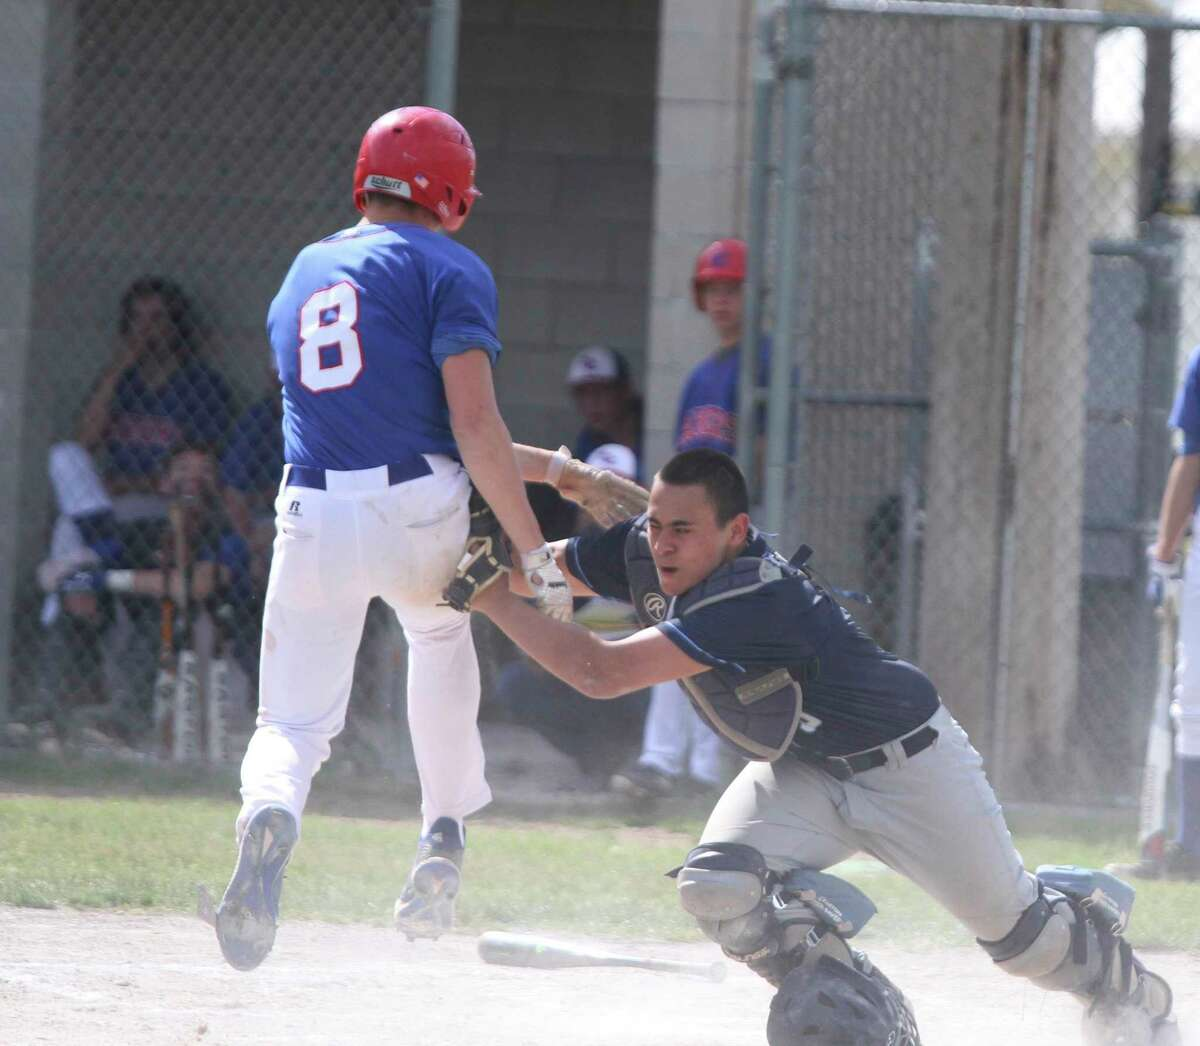 Brethren catcher Adam Dull tags out MCC's Adam Pierce at home plate during a Division 4 district quarterfinal in Mesick. (Dylan Savela/News Advocate)